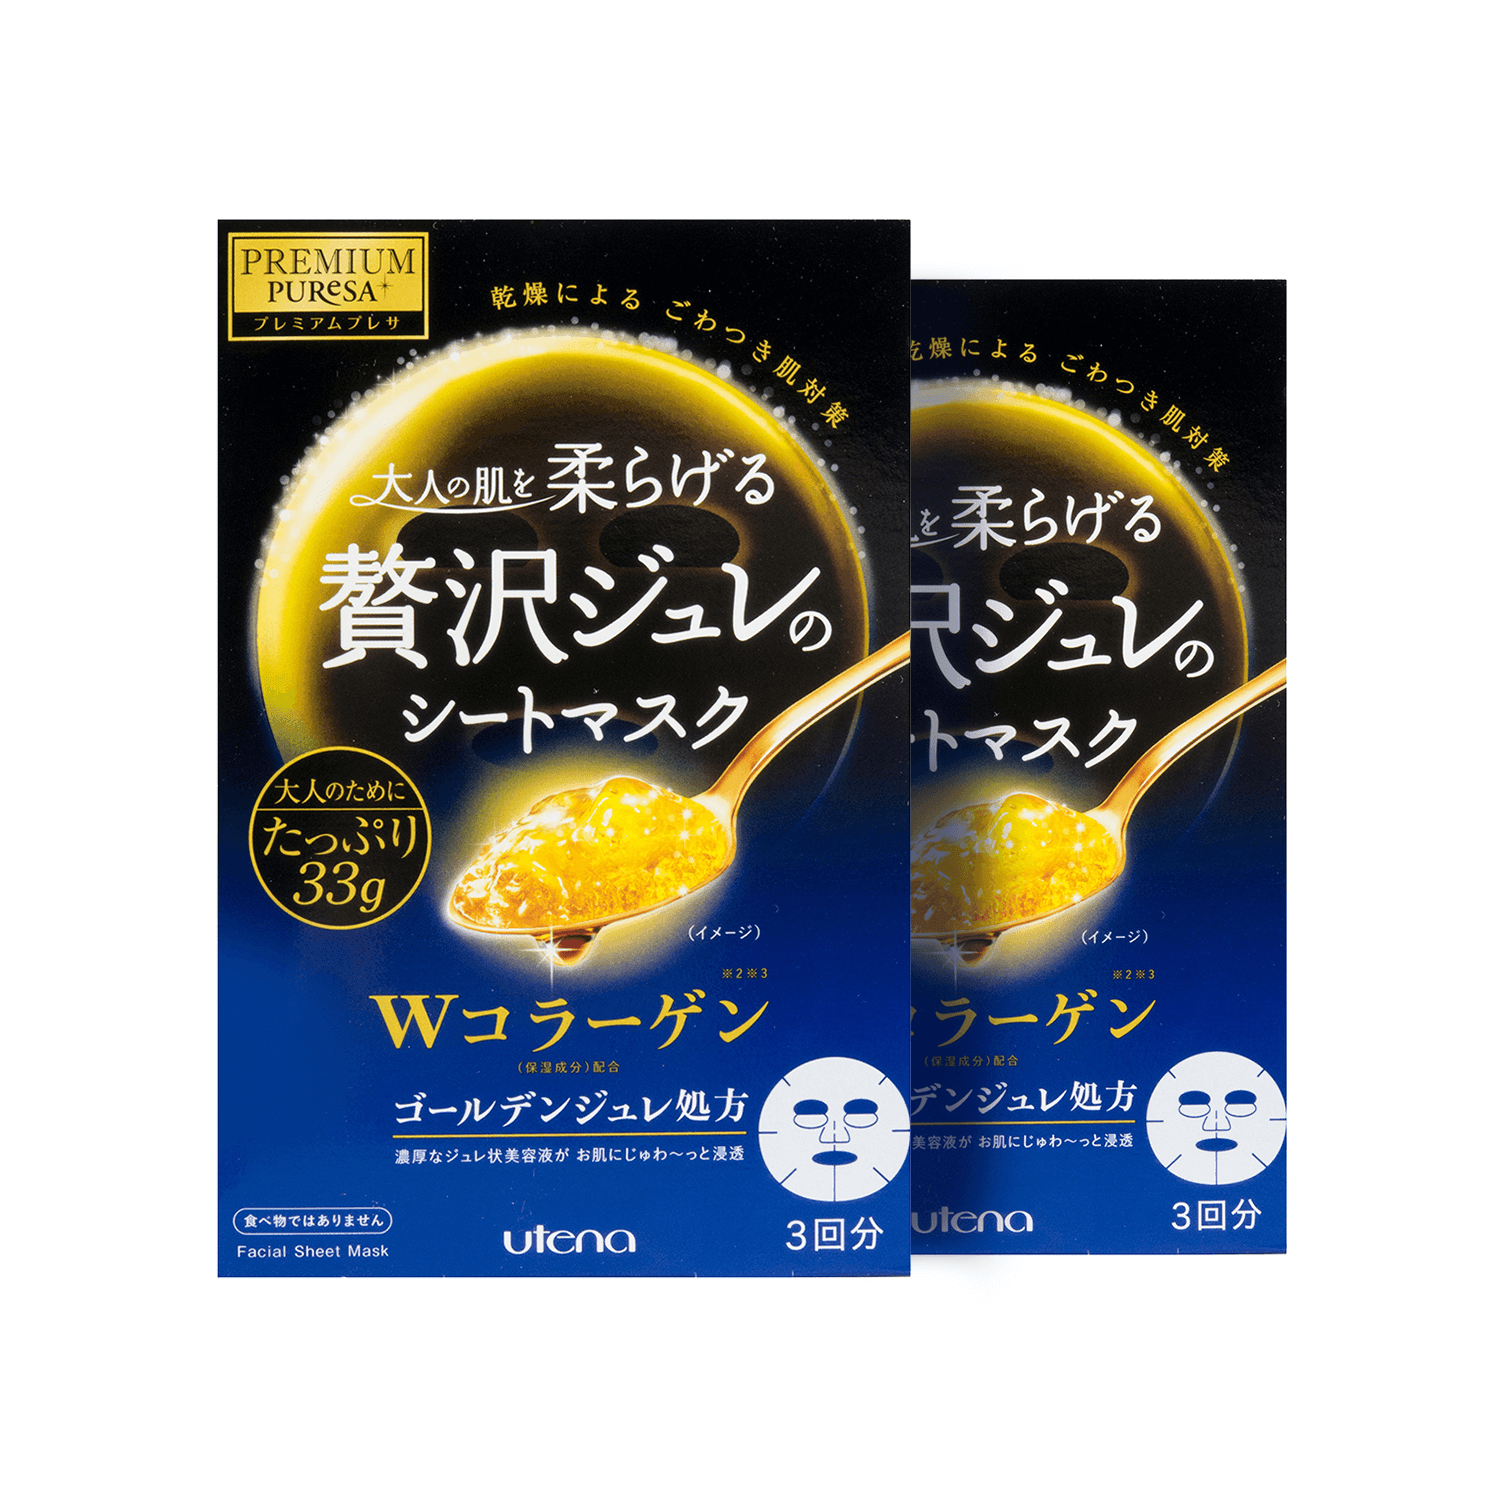 UTENA Premium Presa Golden Jul Mask Collagen 3sheets*2